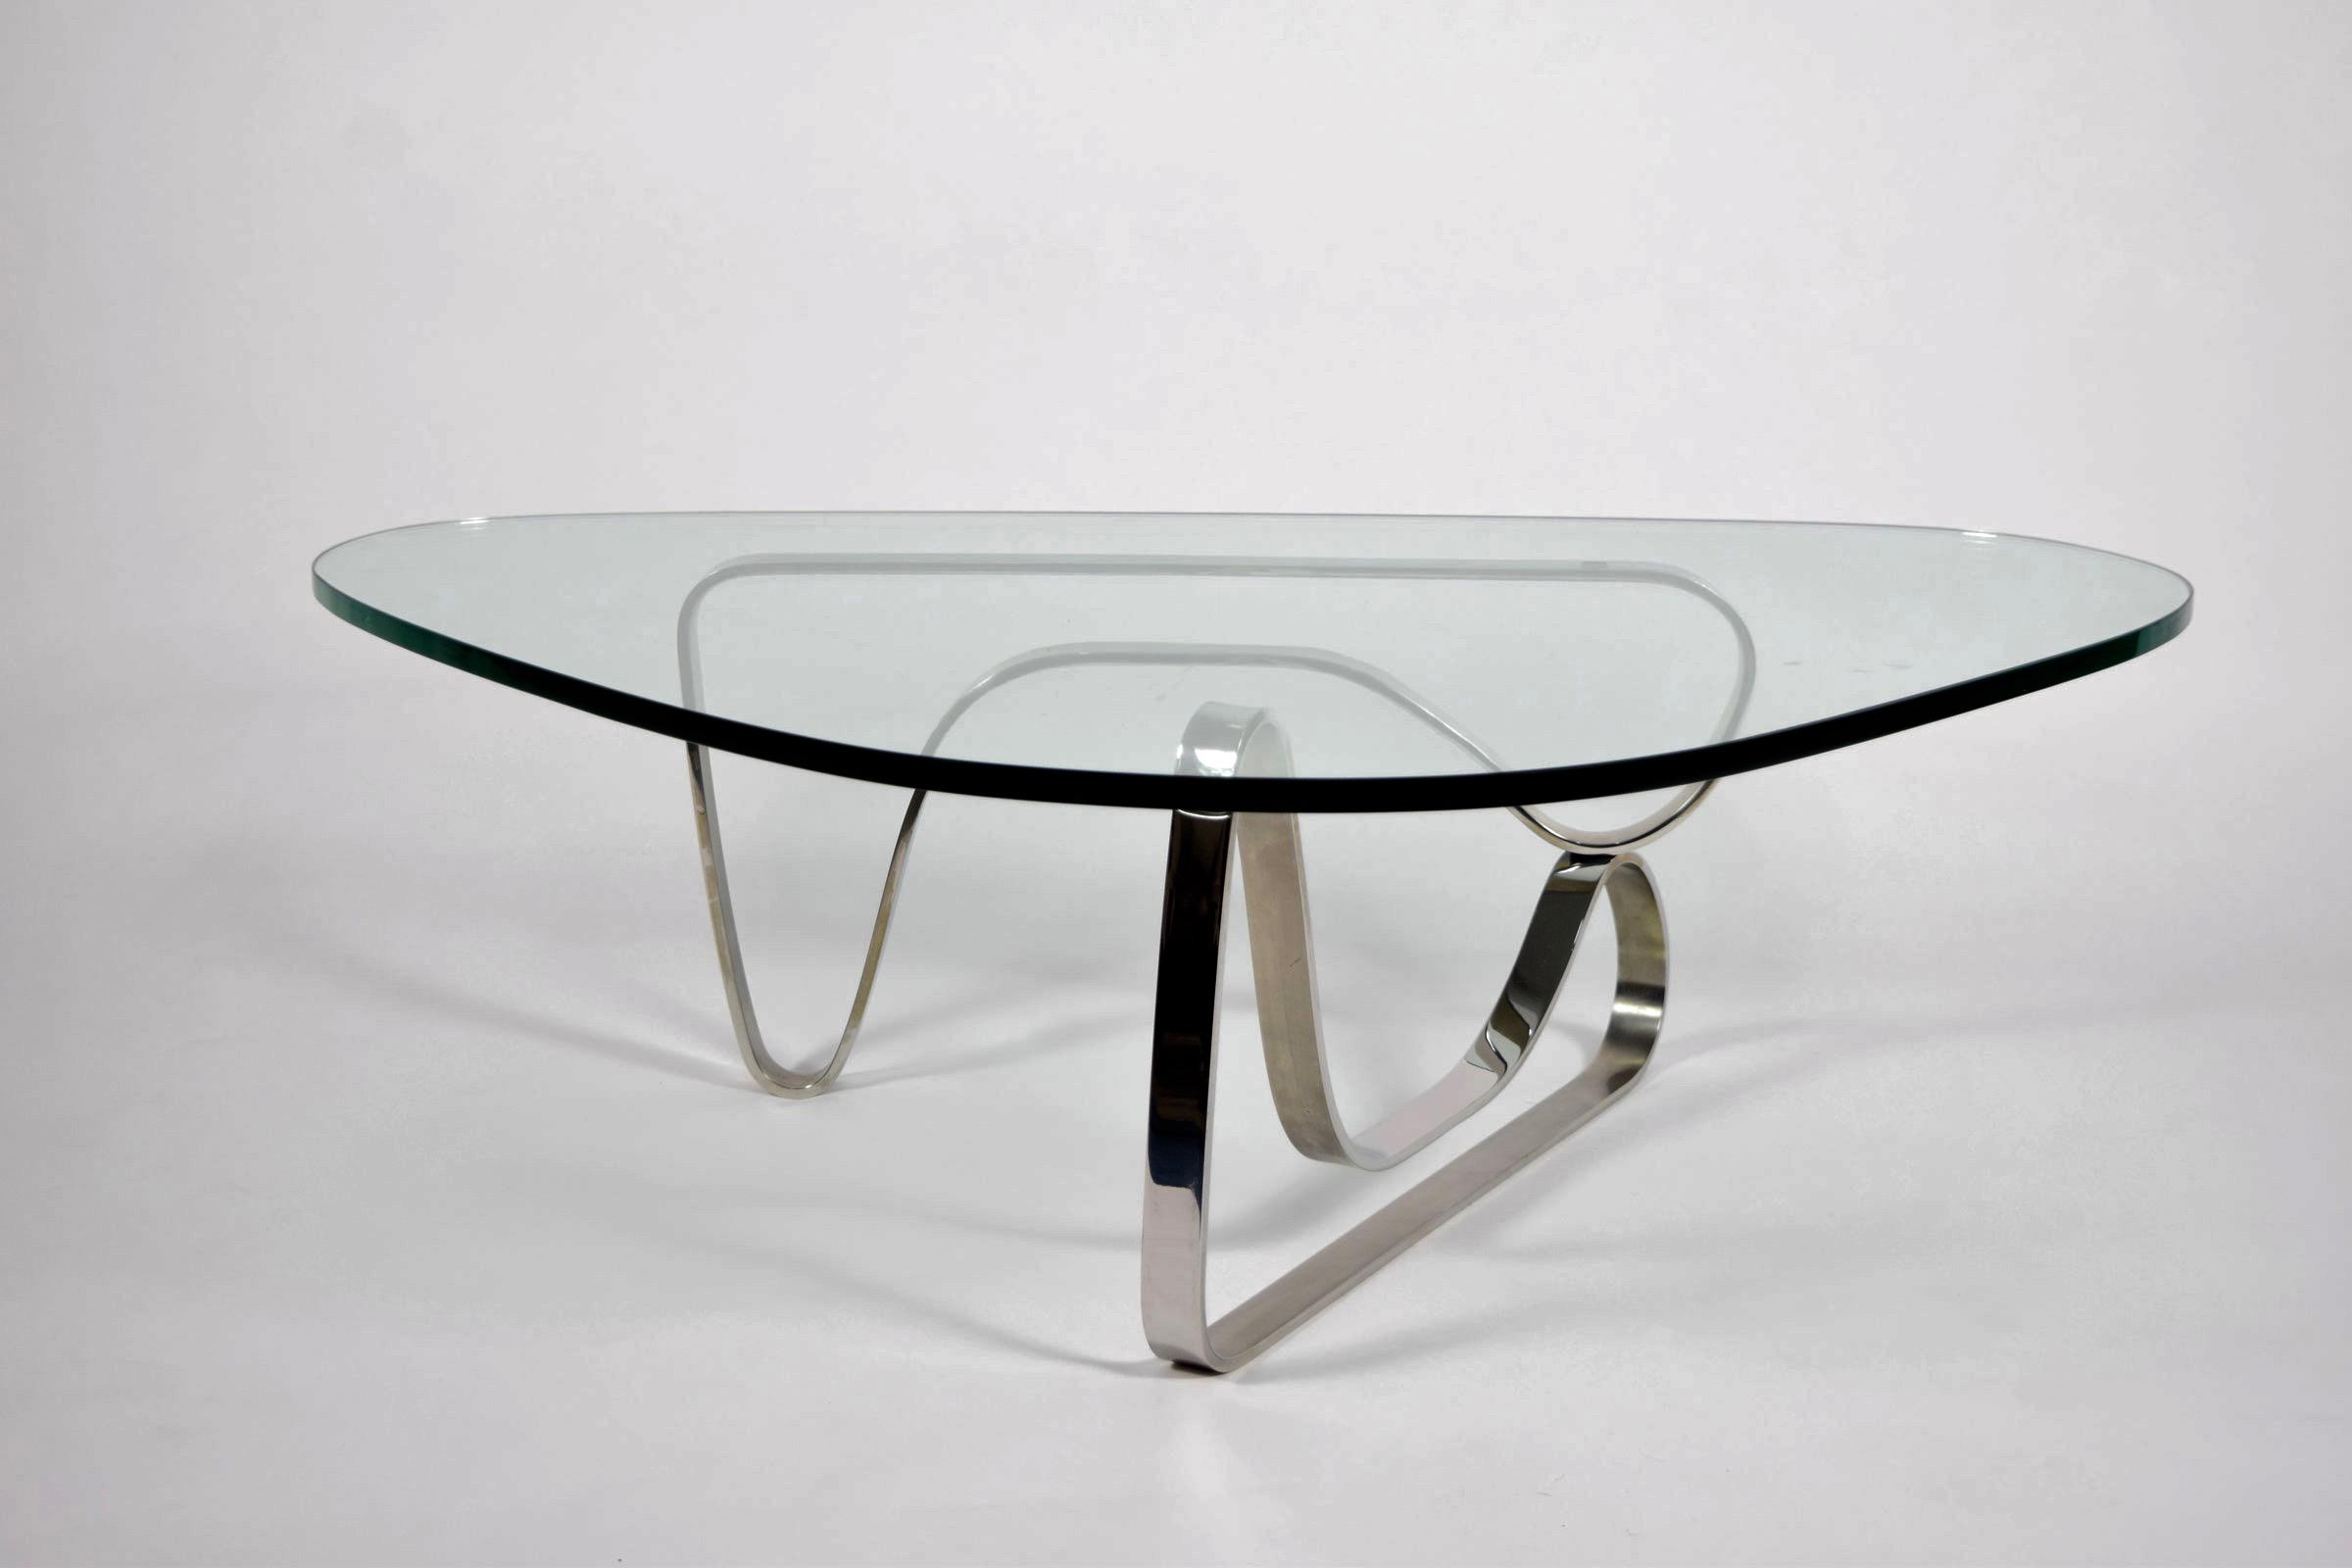 Noguchi Style Coffee Table With Stainless Steel Base   Image 2 Of 7